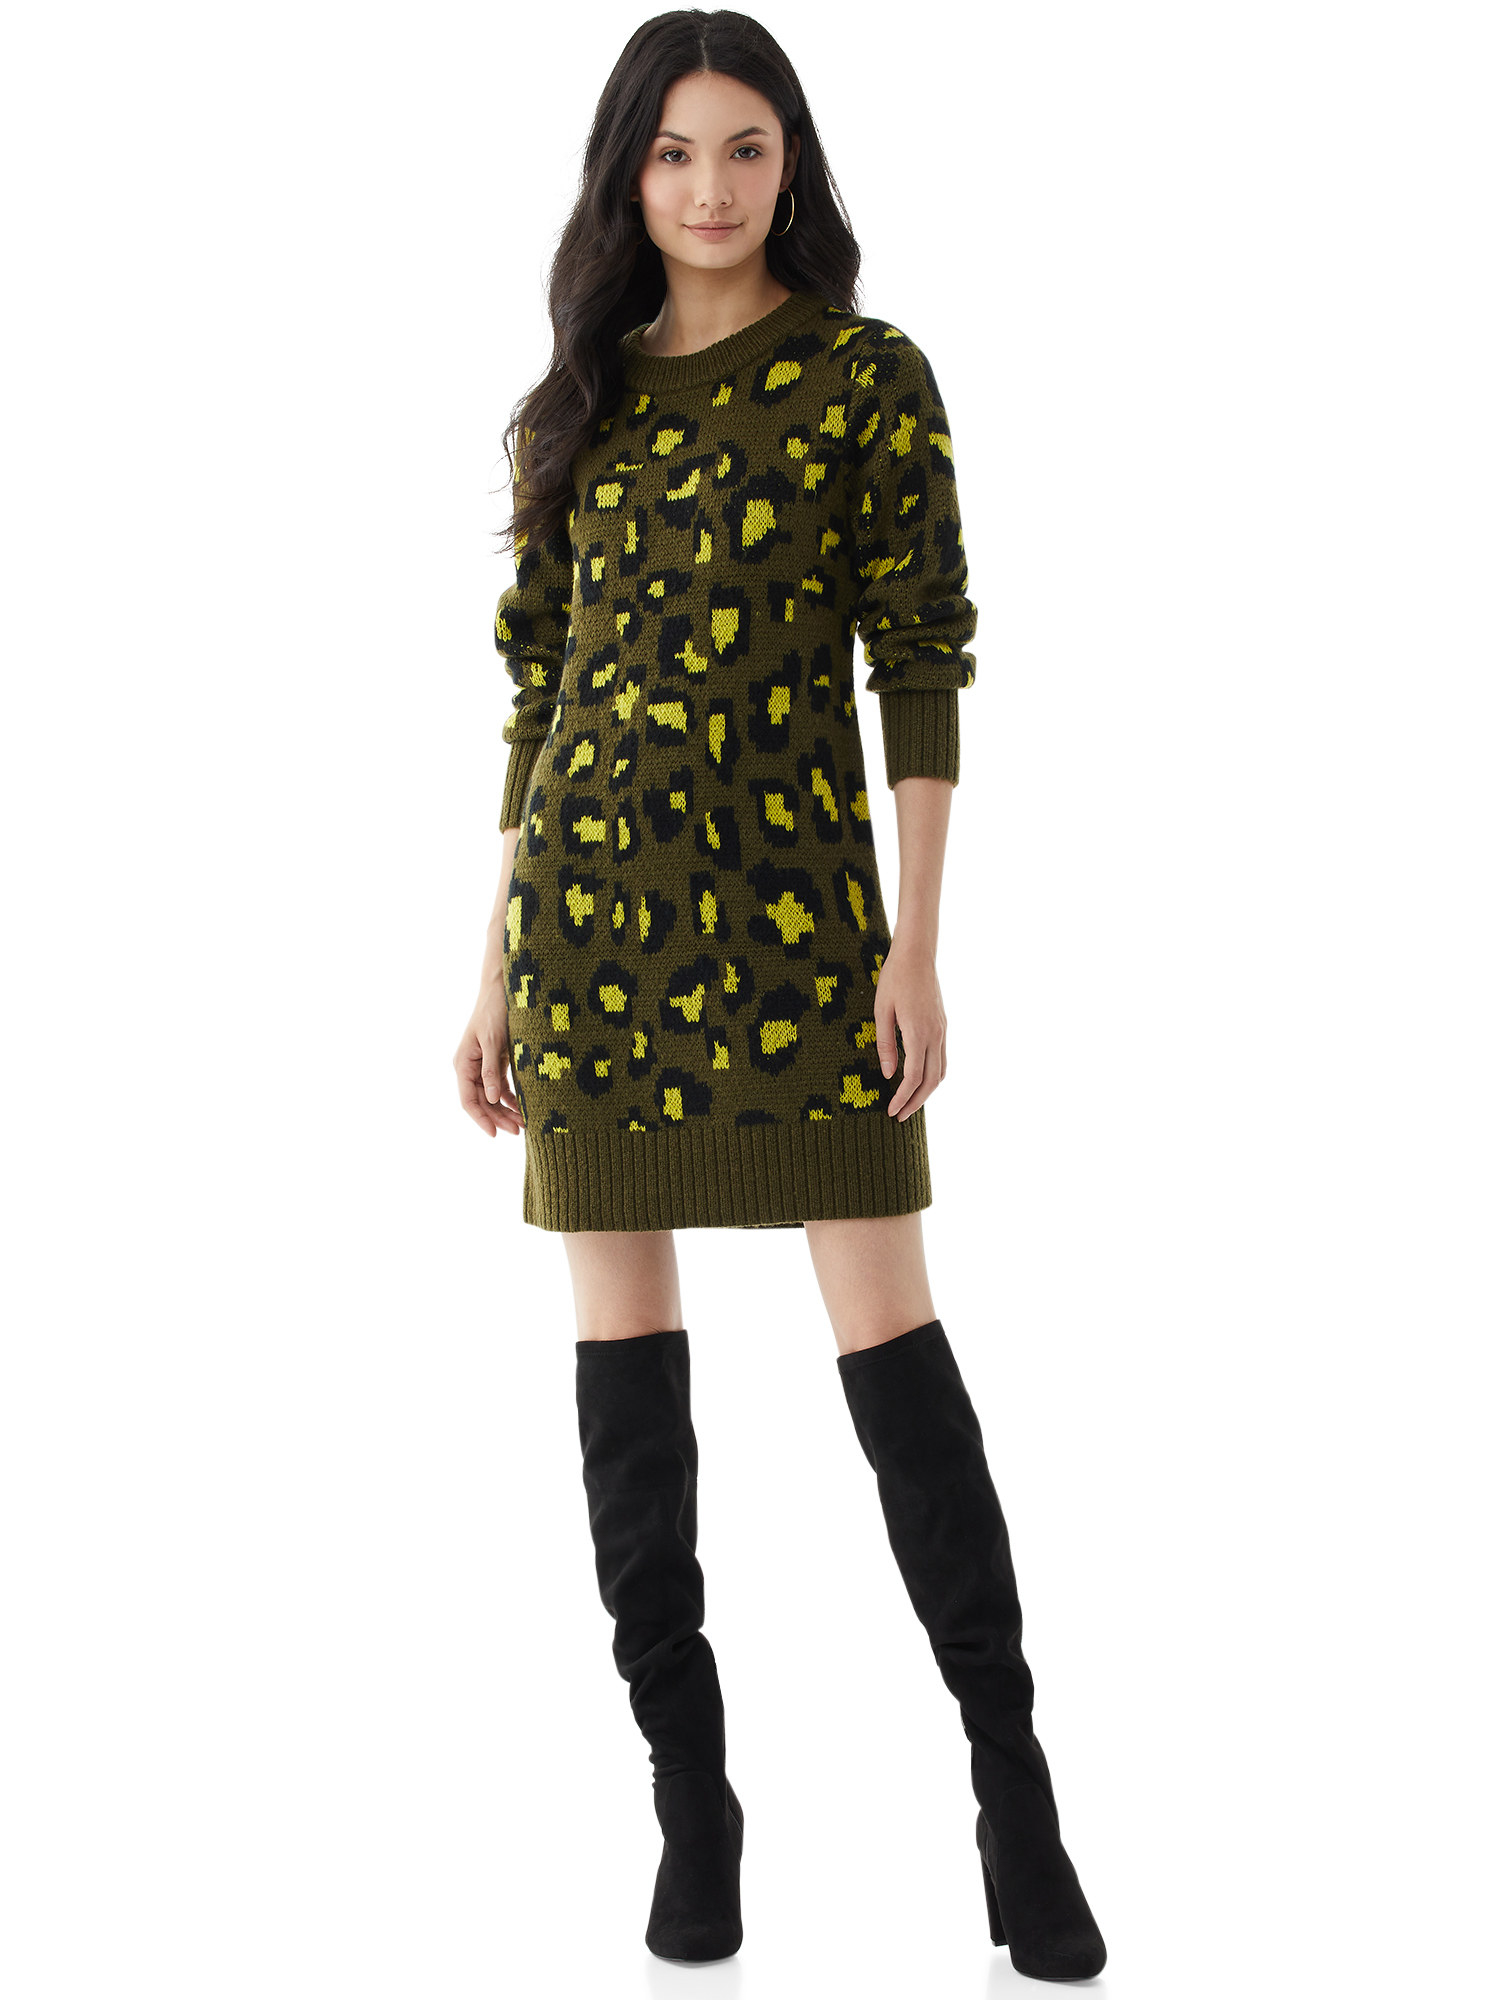 The green leopard print dress